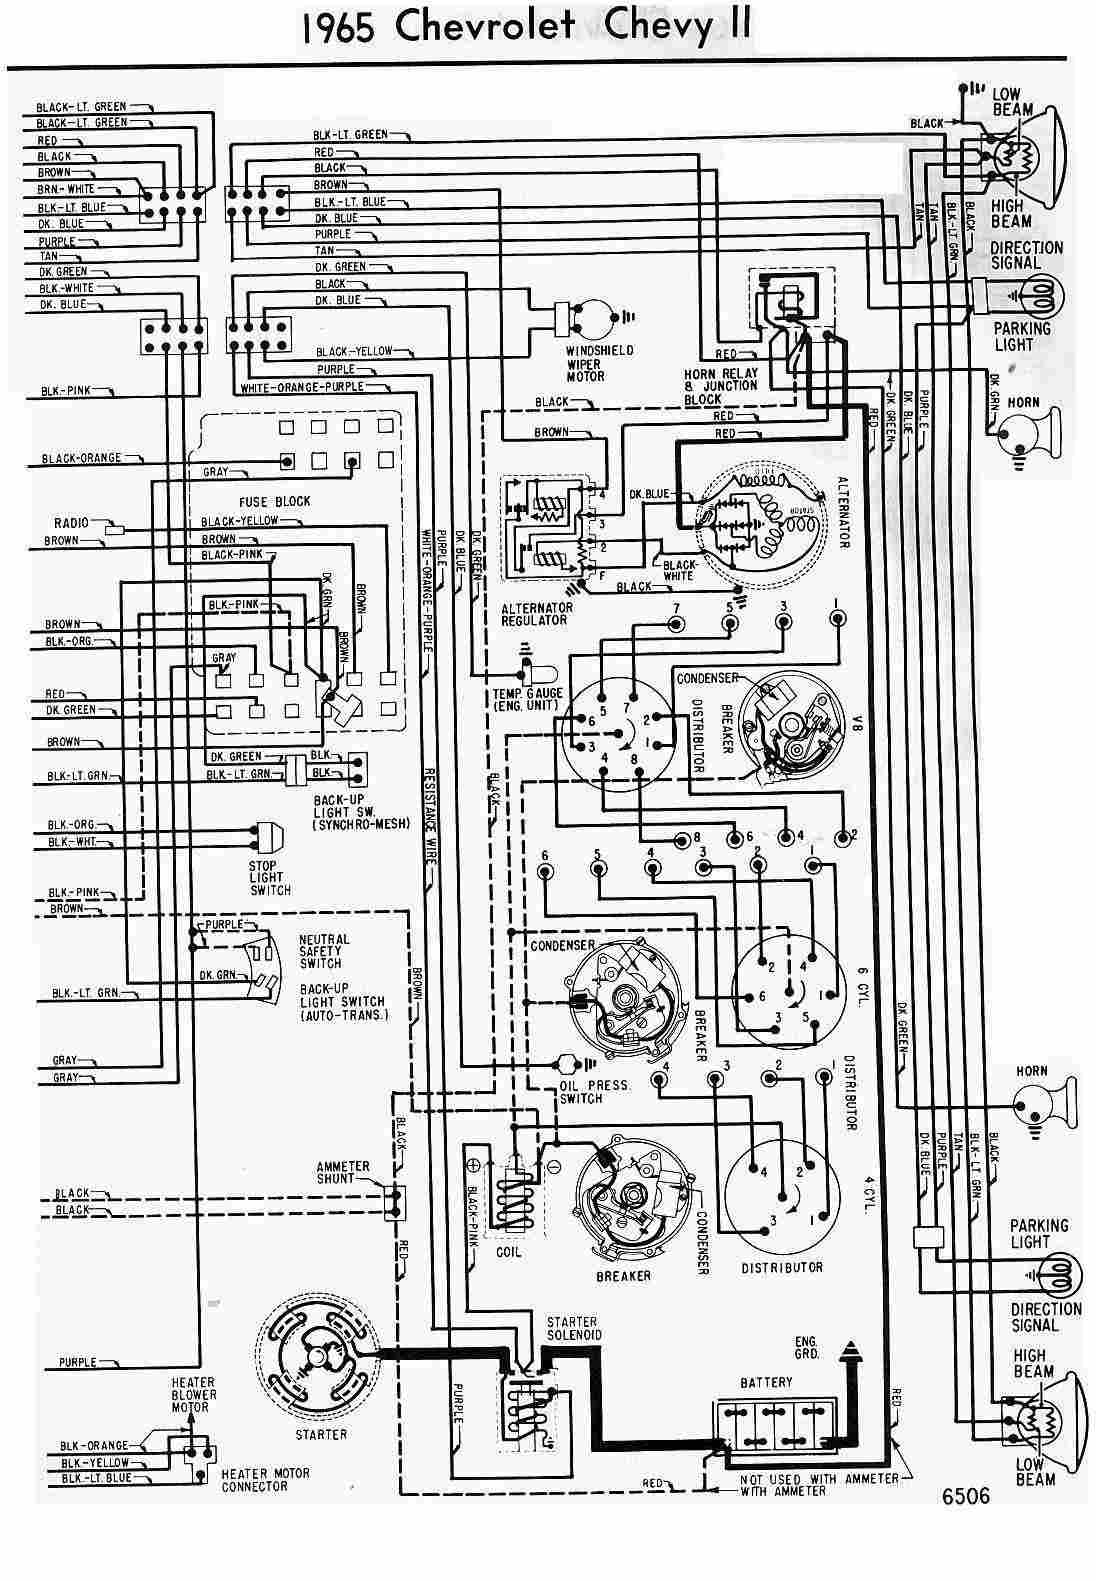 small resolution of 1970 camaro wiring diagram as well chevy wiring diagrams scematic 1979 chevy camaro wiring diagram free 1979 camaro wiring diagrams